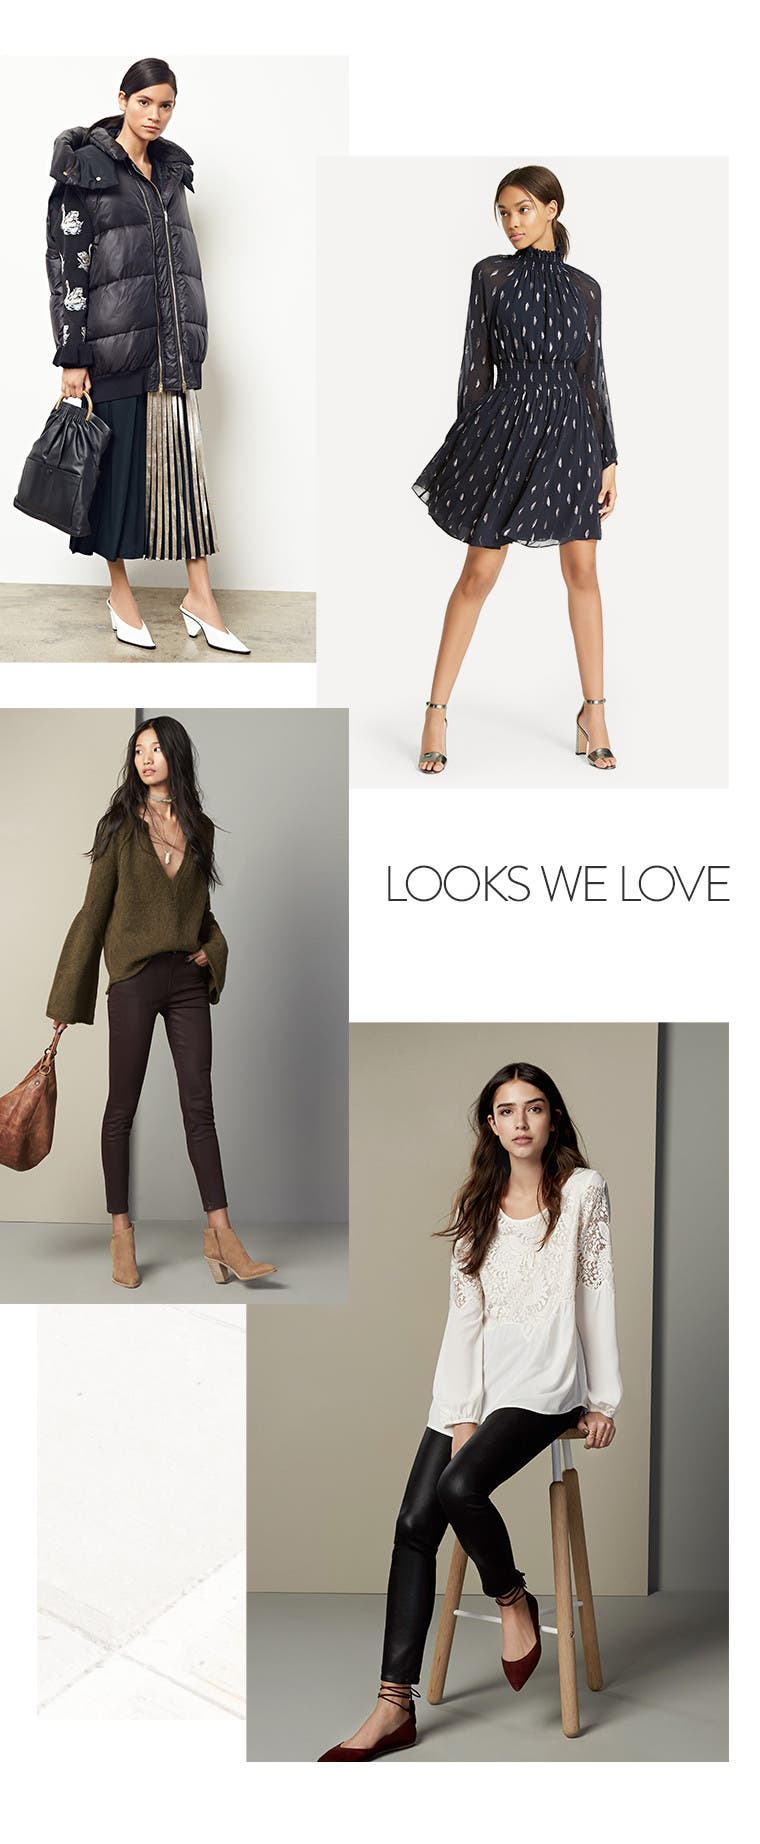 Women's looks we love.